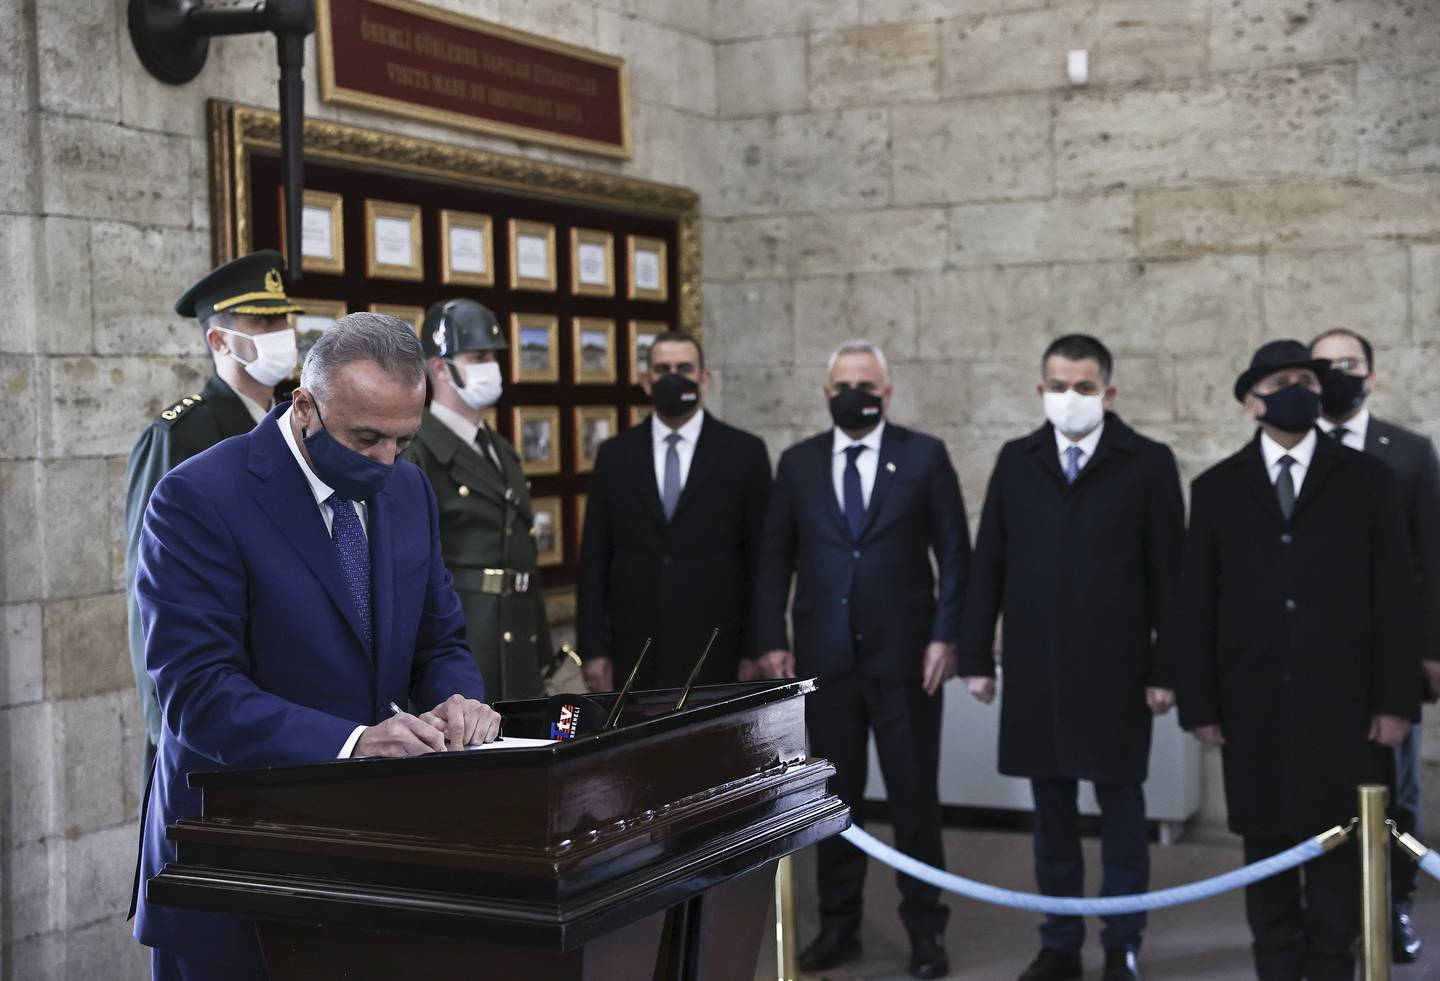 ANKARA,TURKEY - DECEMBER 17: Iraqi Prime Minister Mustafa Al-Kadhimi signs guest book during his visit to Anitkabir, the mausoleum of the founder of Turkish Republic Mustafa Kemal Ataturk, in Ankara, Turkey on December 17, 2020. Iraqi Prime Minister accompanied by Minister of Agriculture and Forestry of Turkey, Bekir Pakdemirli during his visit. (Photo by Emin Sansar/Anadolu Agency via Getty Images)